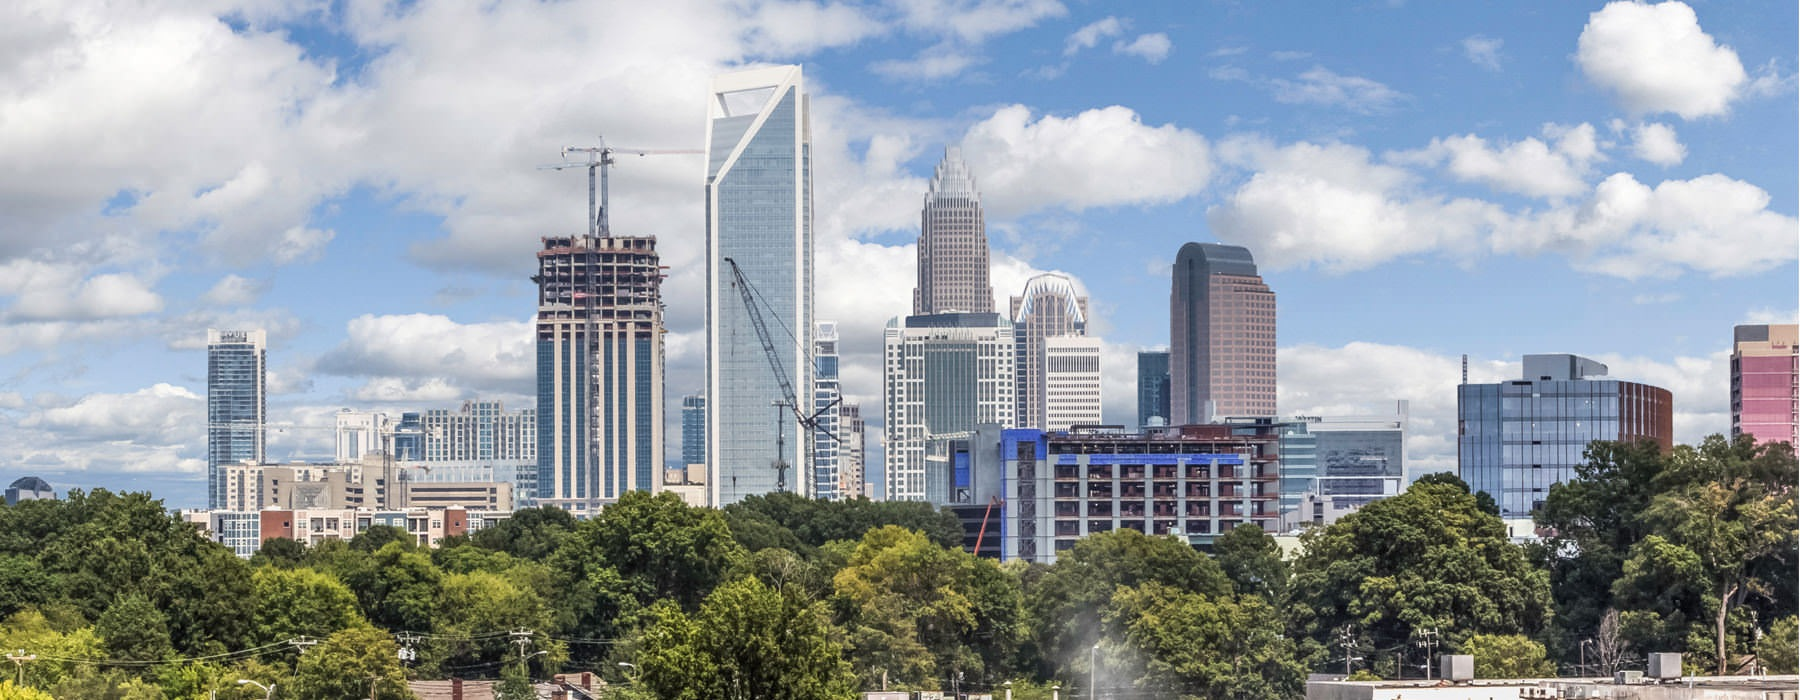 Skyline of Charlotte, NC on a bright sunny day